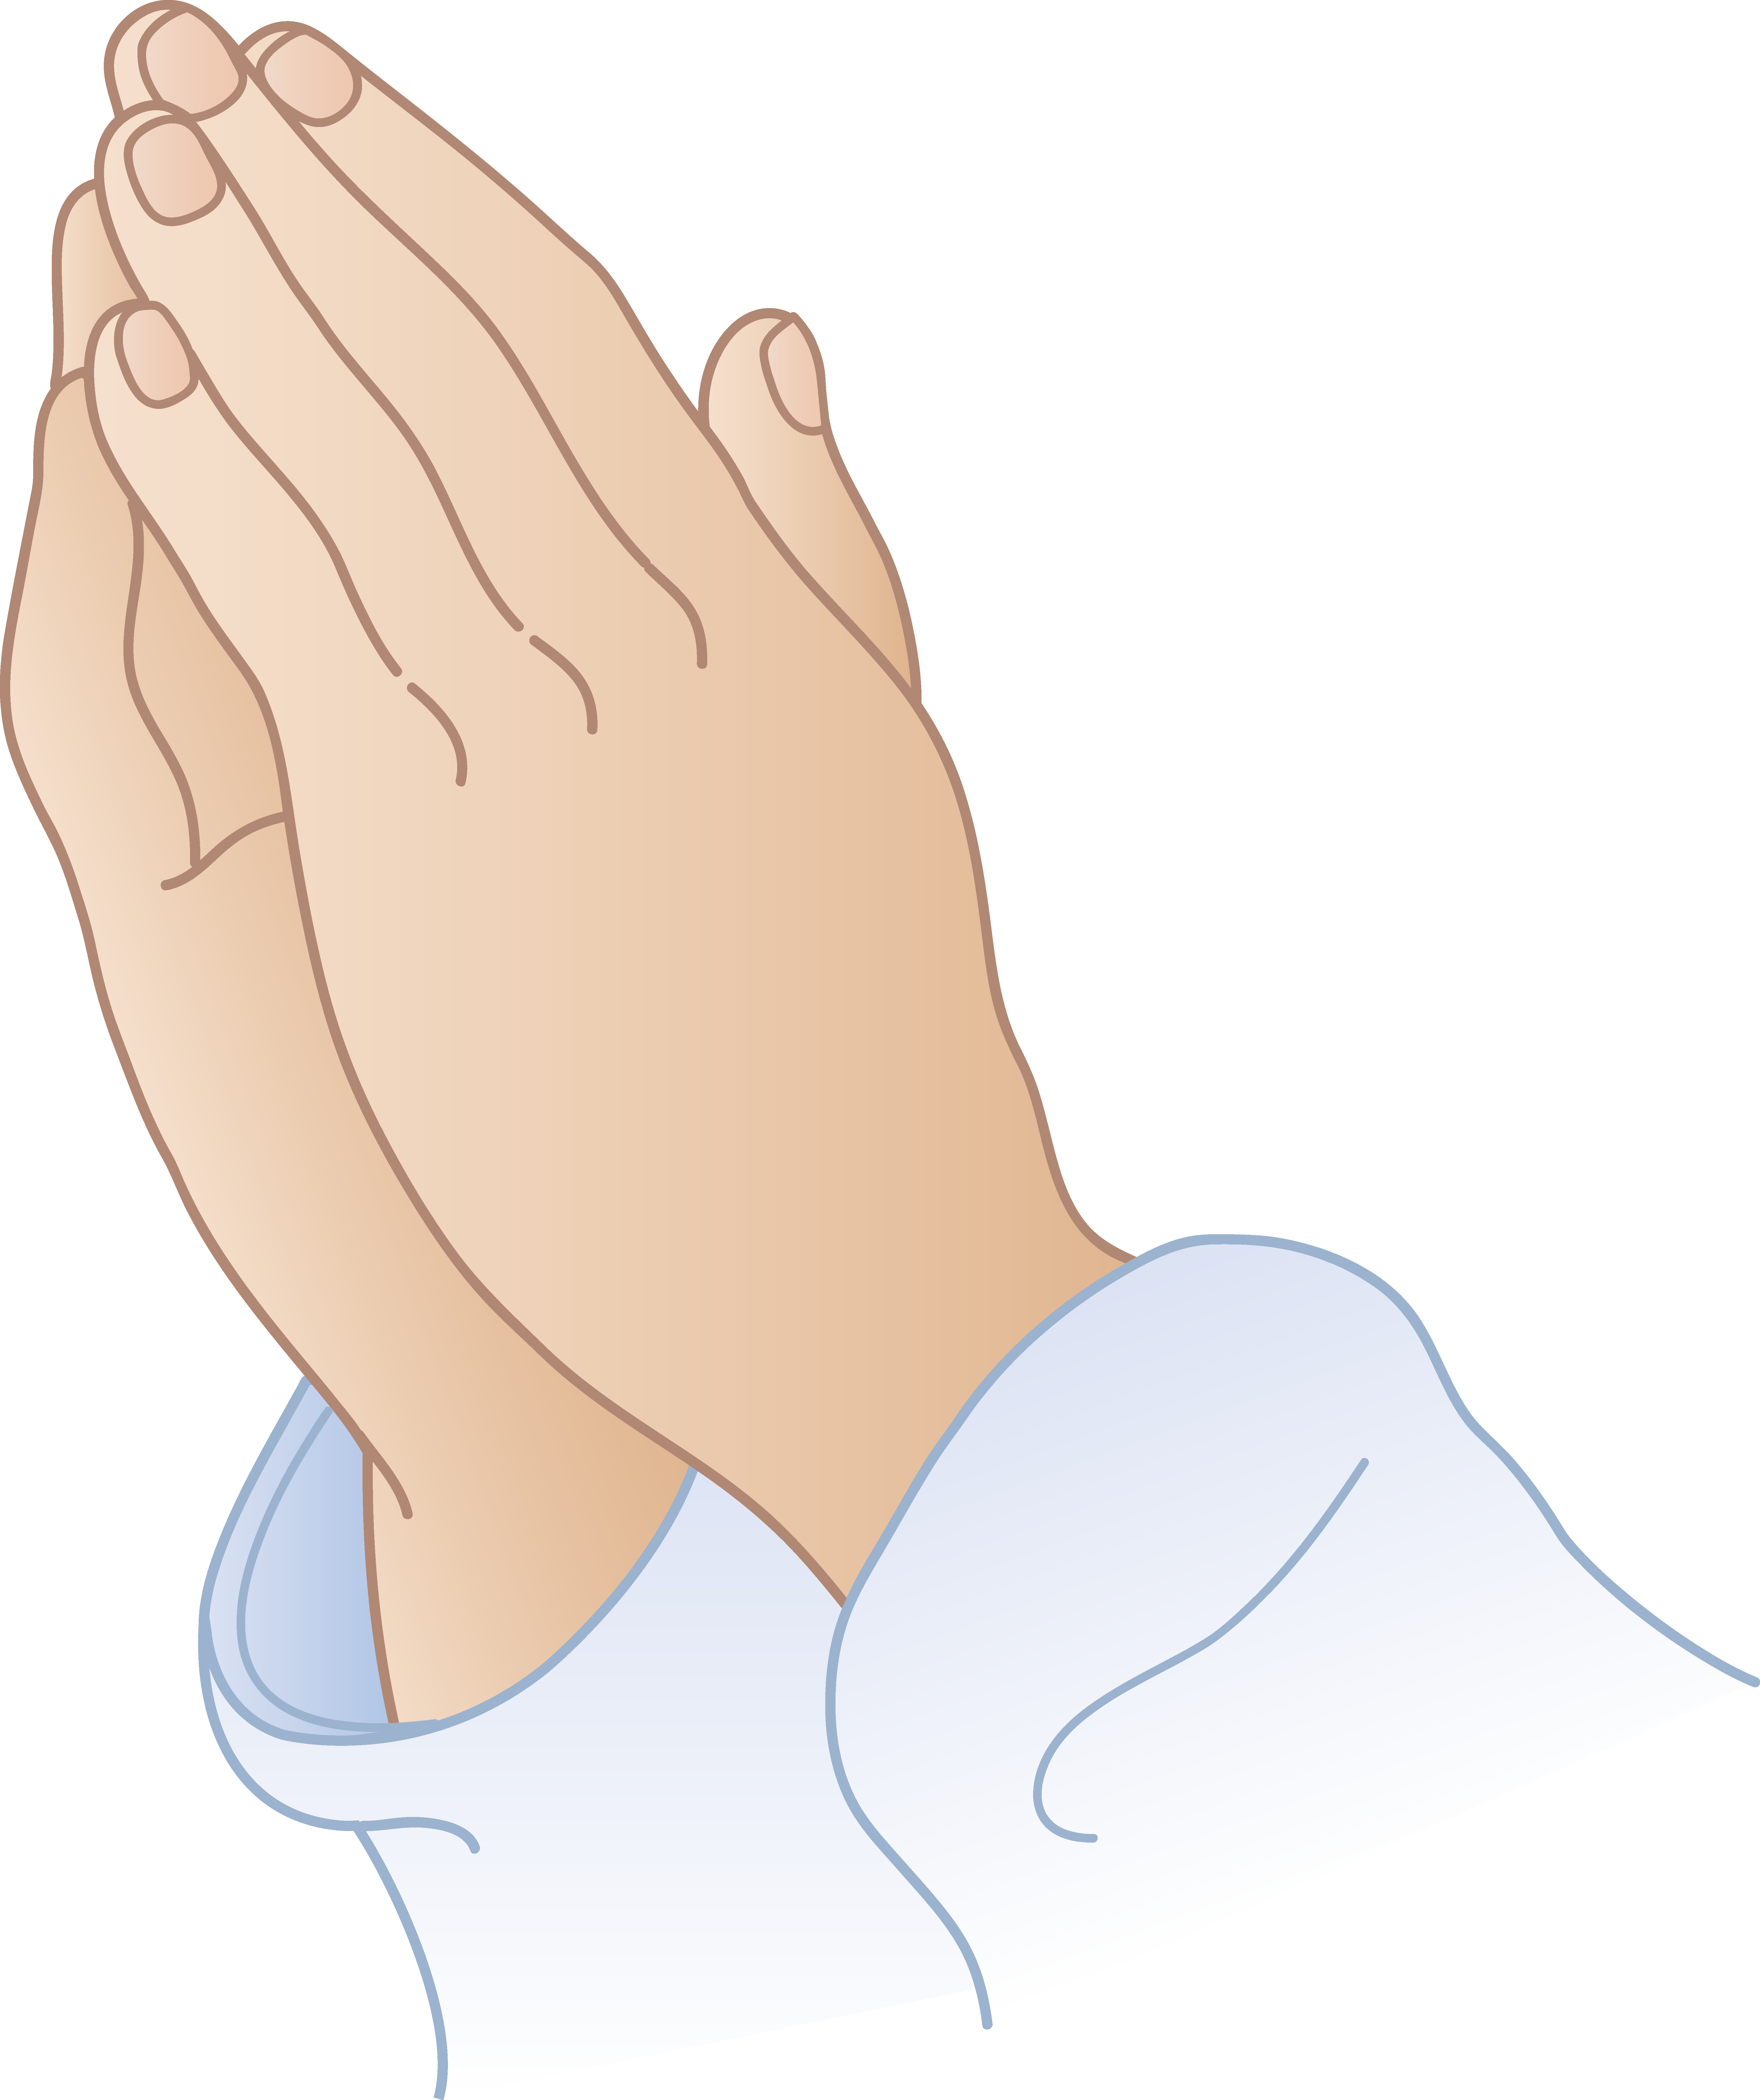 6530x7791 Image Result For Free Silhouette Clip Art Praying Hands